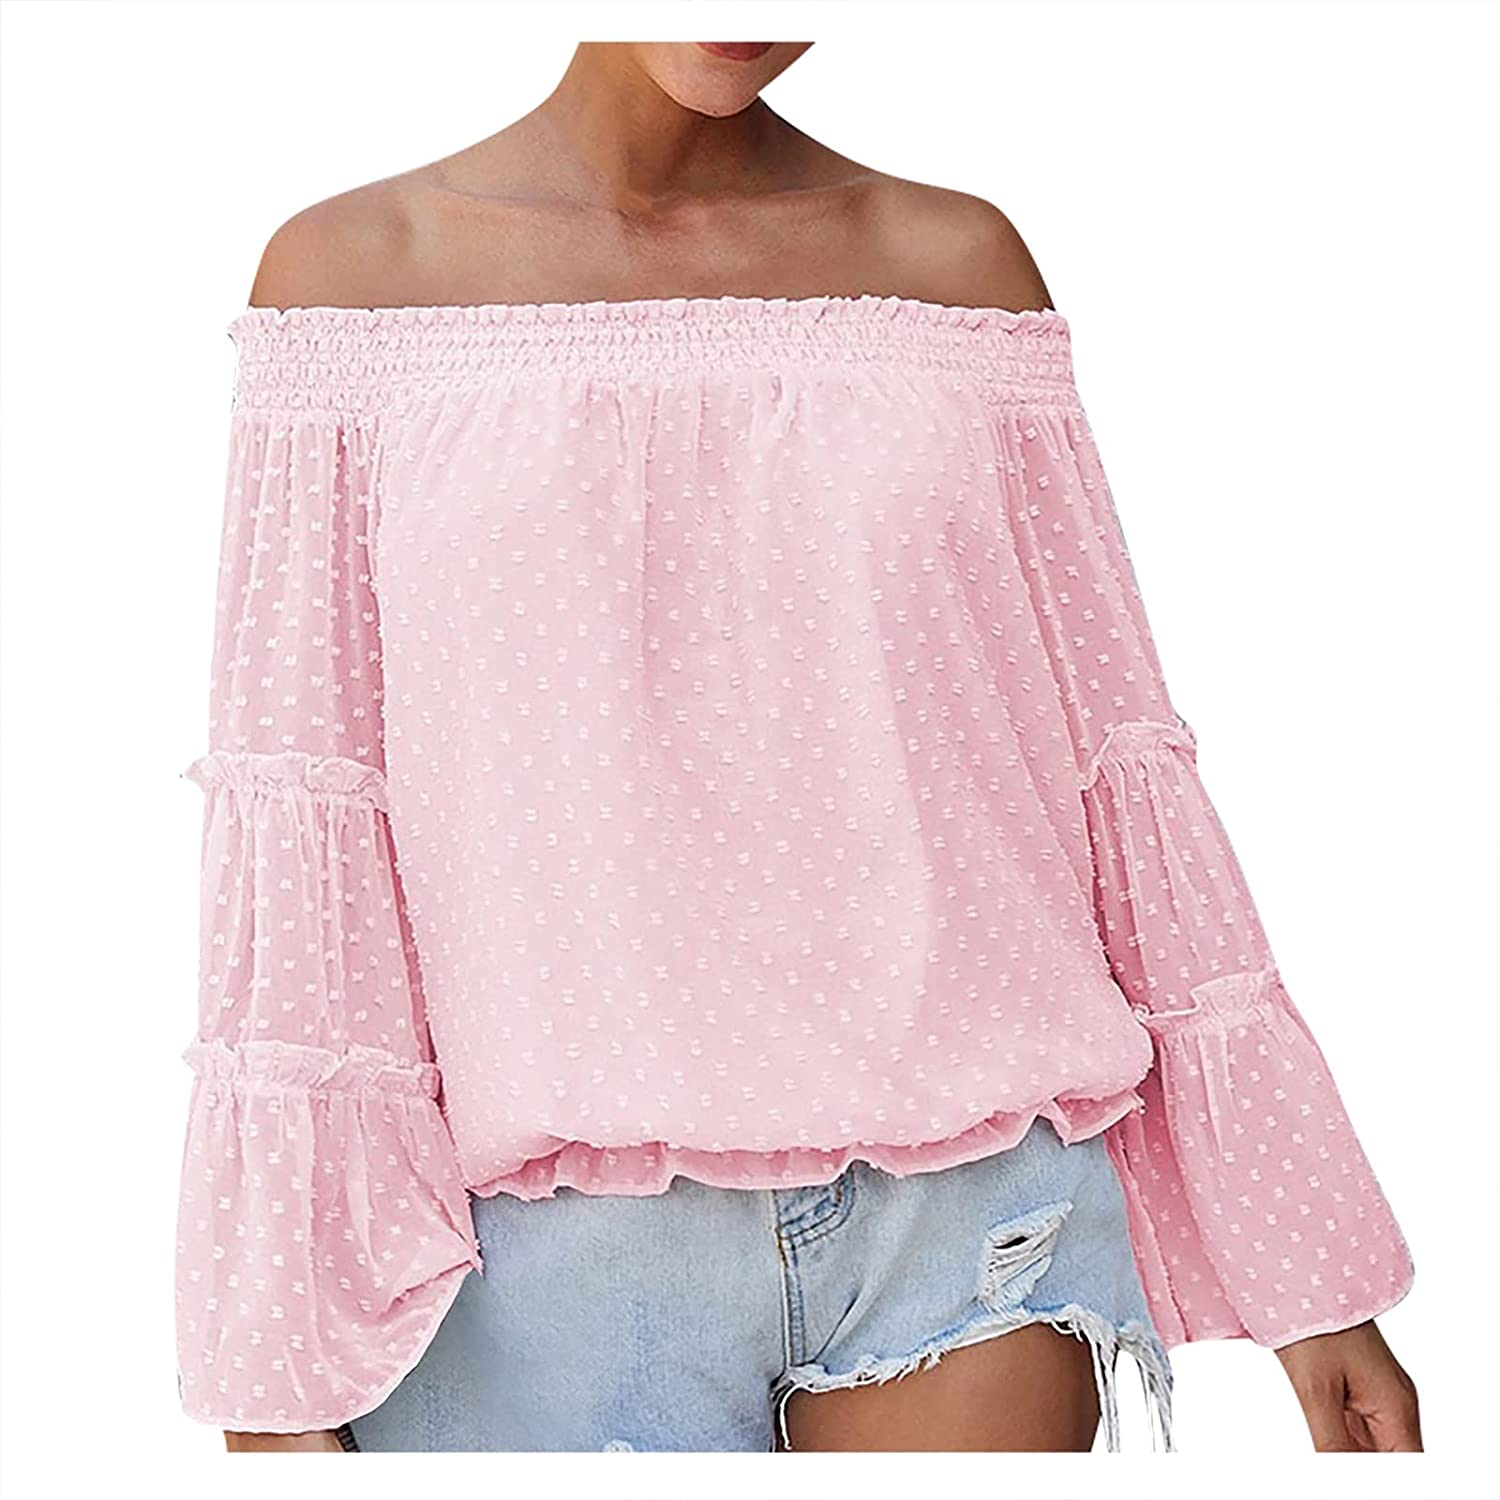 Long Tops for Women Lared Long Sleeve Chiffon Off Shoulder Neckline Hollow Loose Top